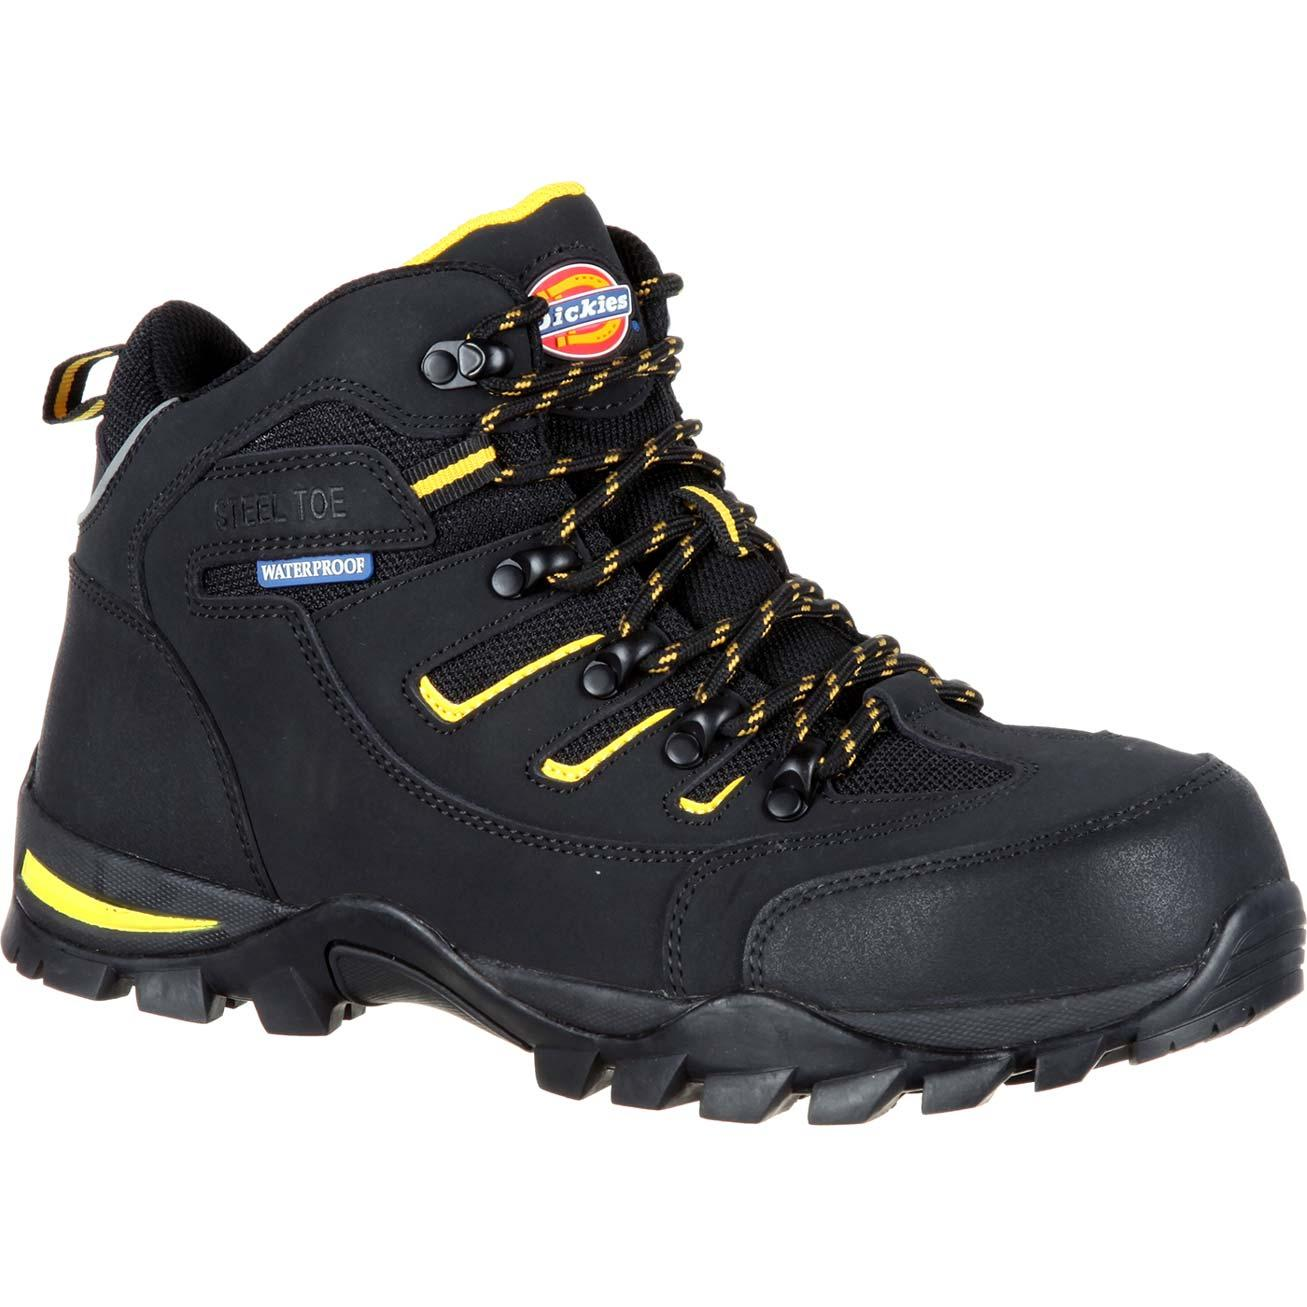 DICKIES Men's Sierra Steel Toe Waterproof Hiker Work Boots buy cheap deals buy cheap geniue stockist where to buy outlet big discount free shipping largest supplier uvAl8v2